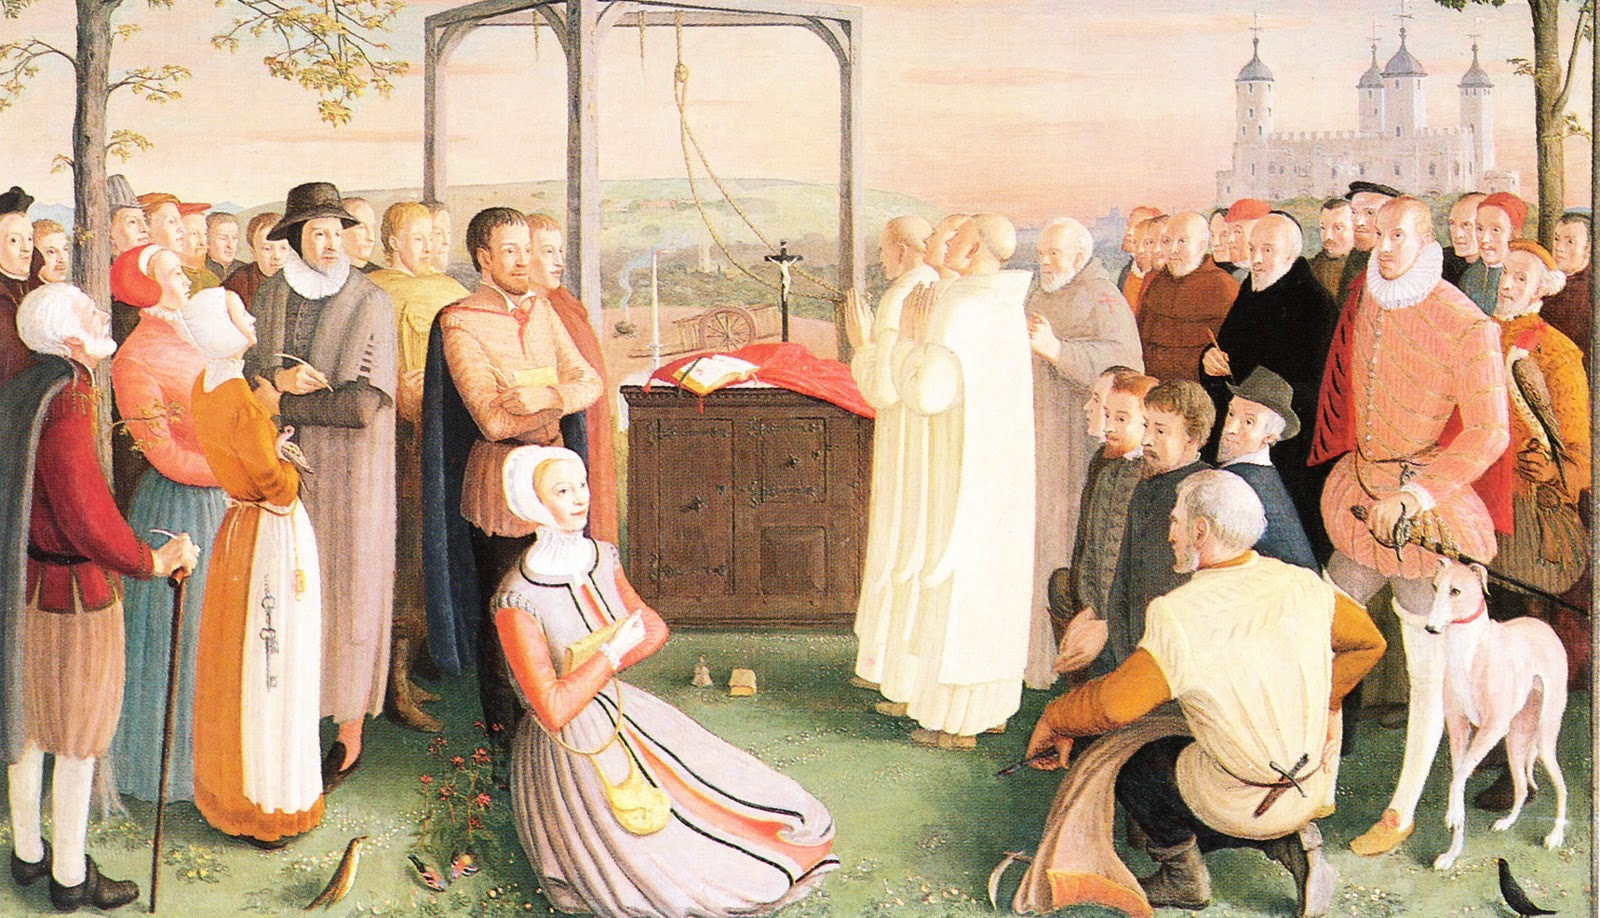 The painting by Daphne Pollen (1904-86) commissioned for the 1970 canonization of the forty martyrs of England and Wales.   PAINTING KEY ▸